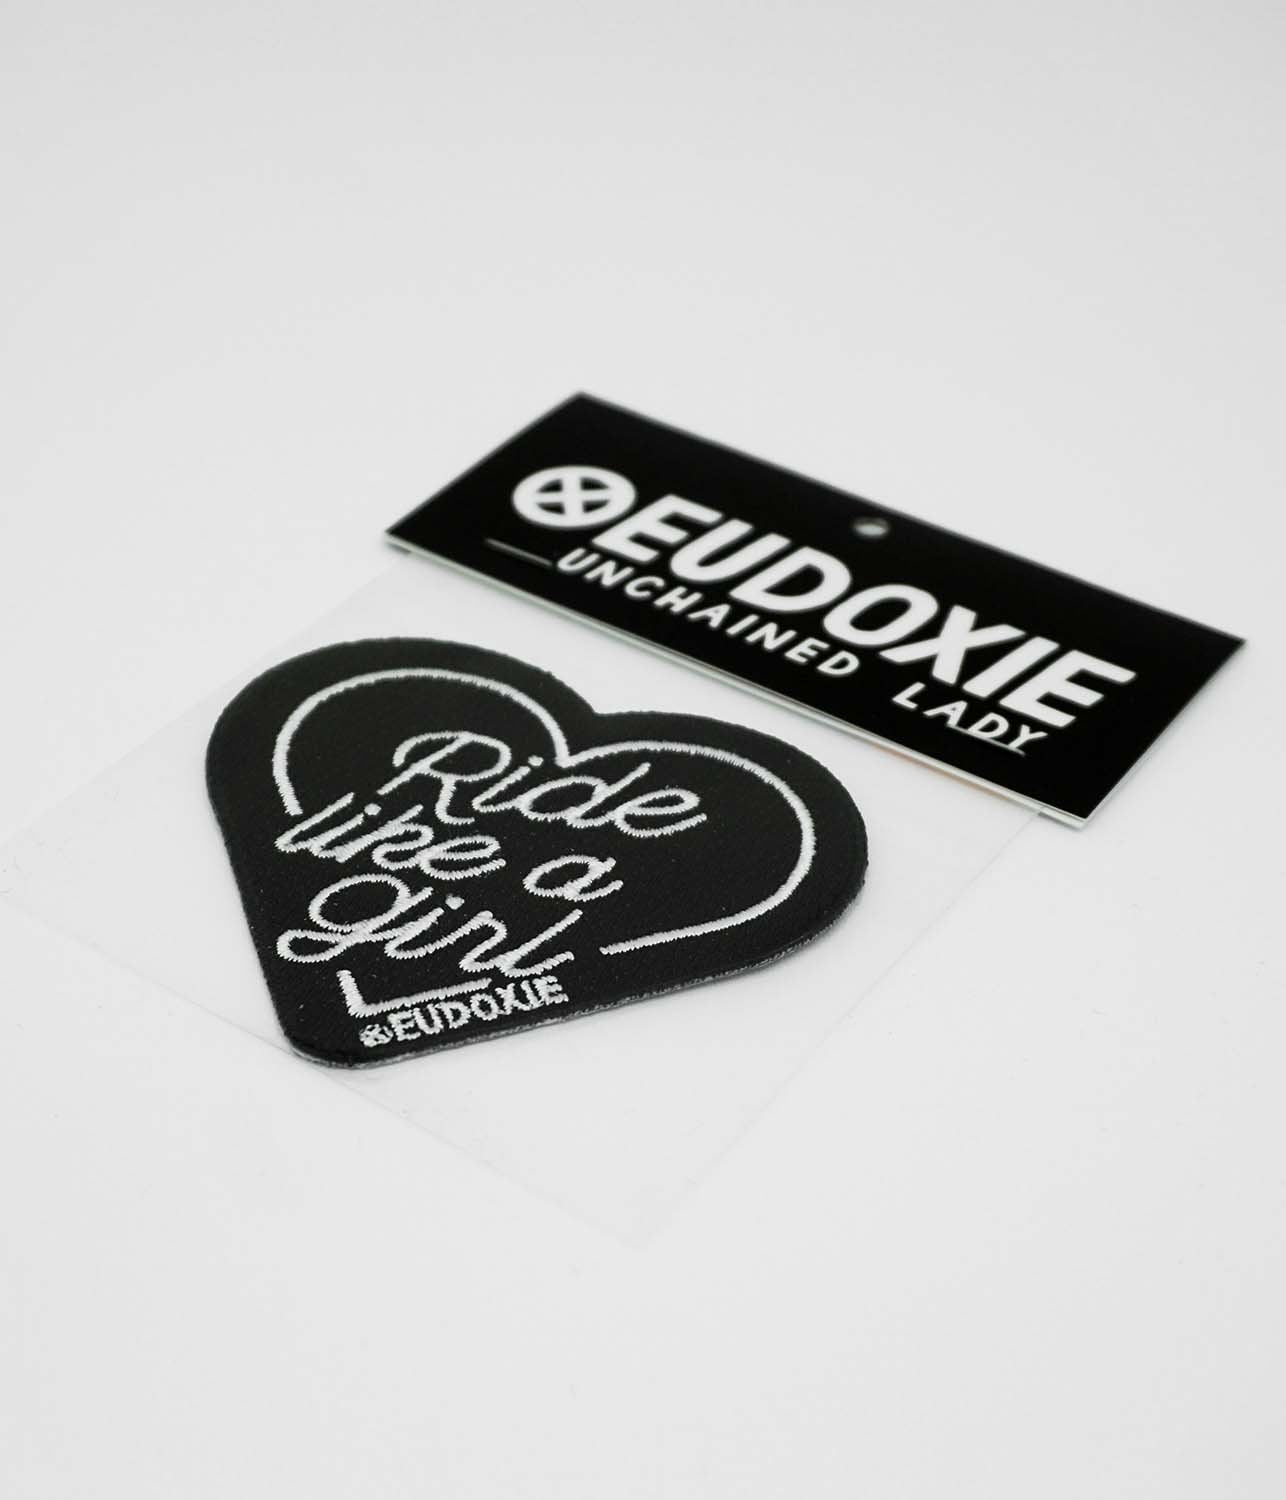 Eudoxie - Eudoxie Ride Like a Girl Patches - Accessories - Salt Flats Clothing